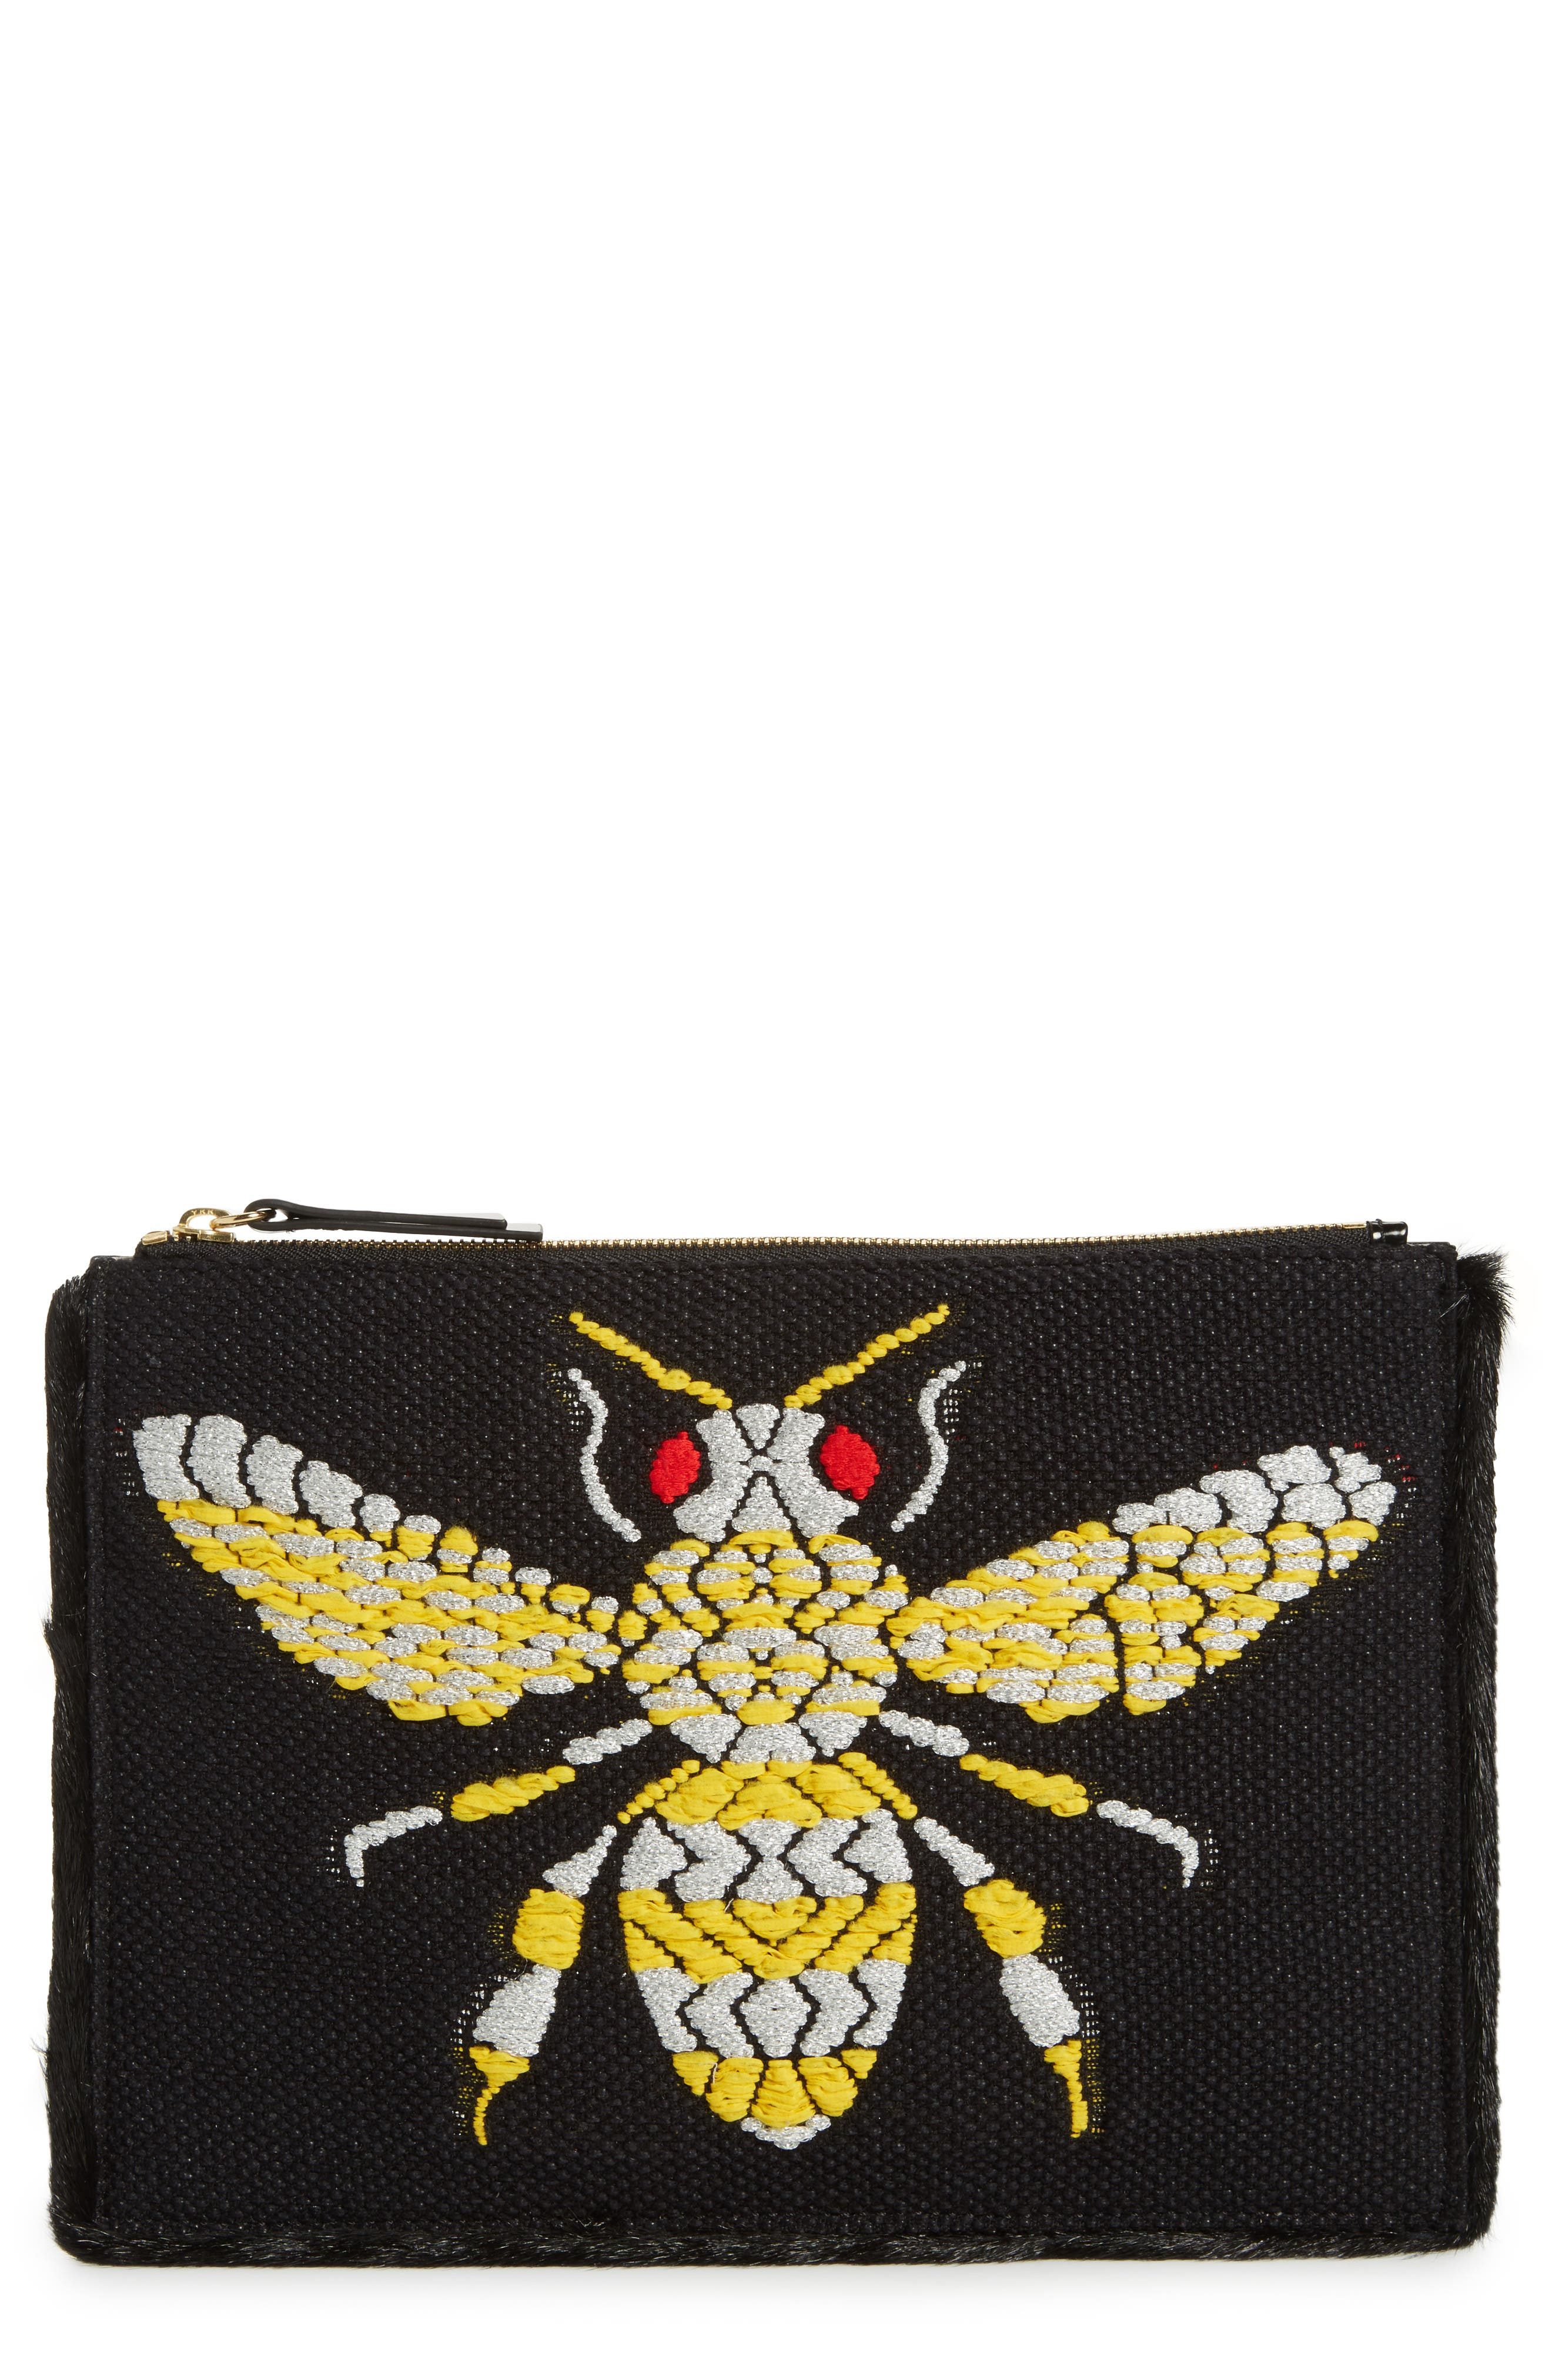 Main Image - Frances Valentine Large Bee Leather Clutch